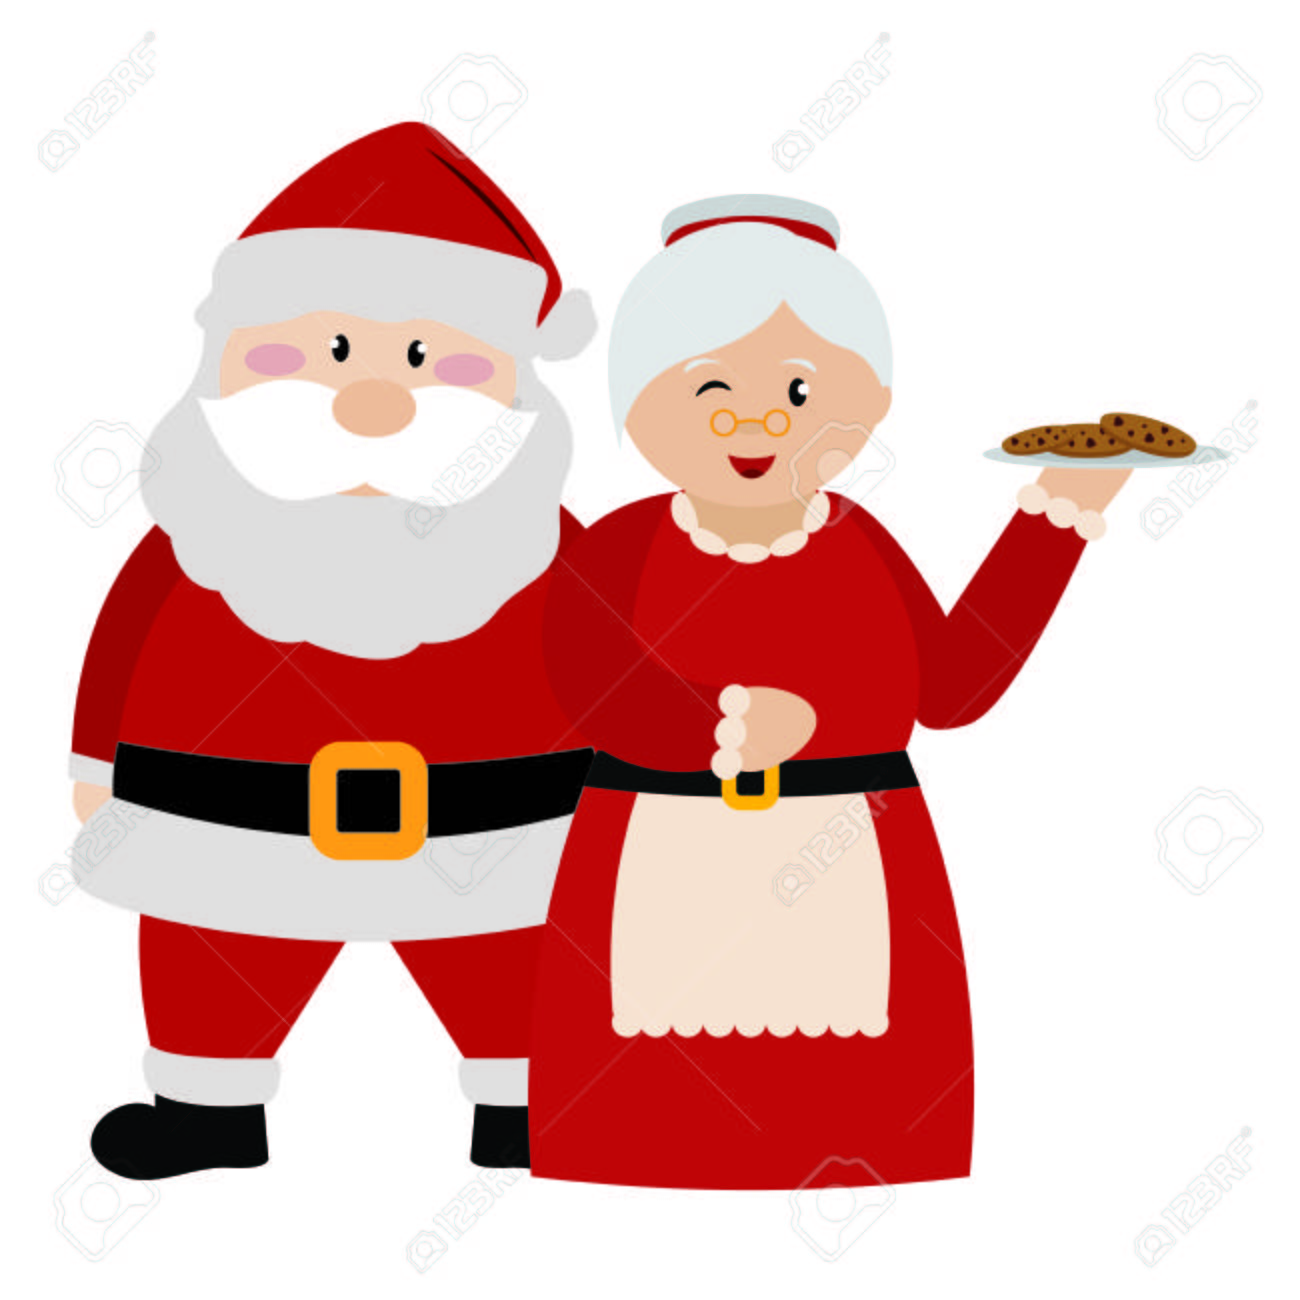 Cute Christmas Cartoon Characters Vector Illustration Design Royalty Free Cliparts Vectors And Stock Illustration Image 110059282